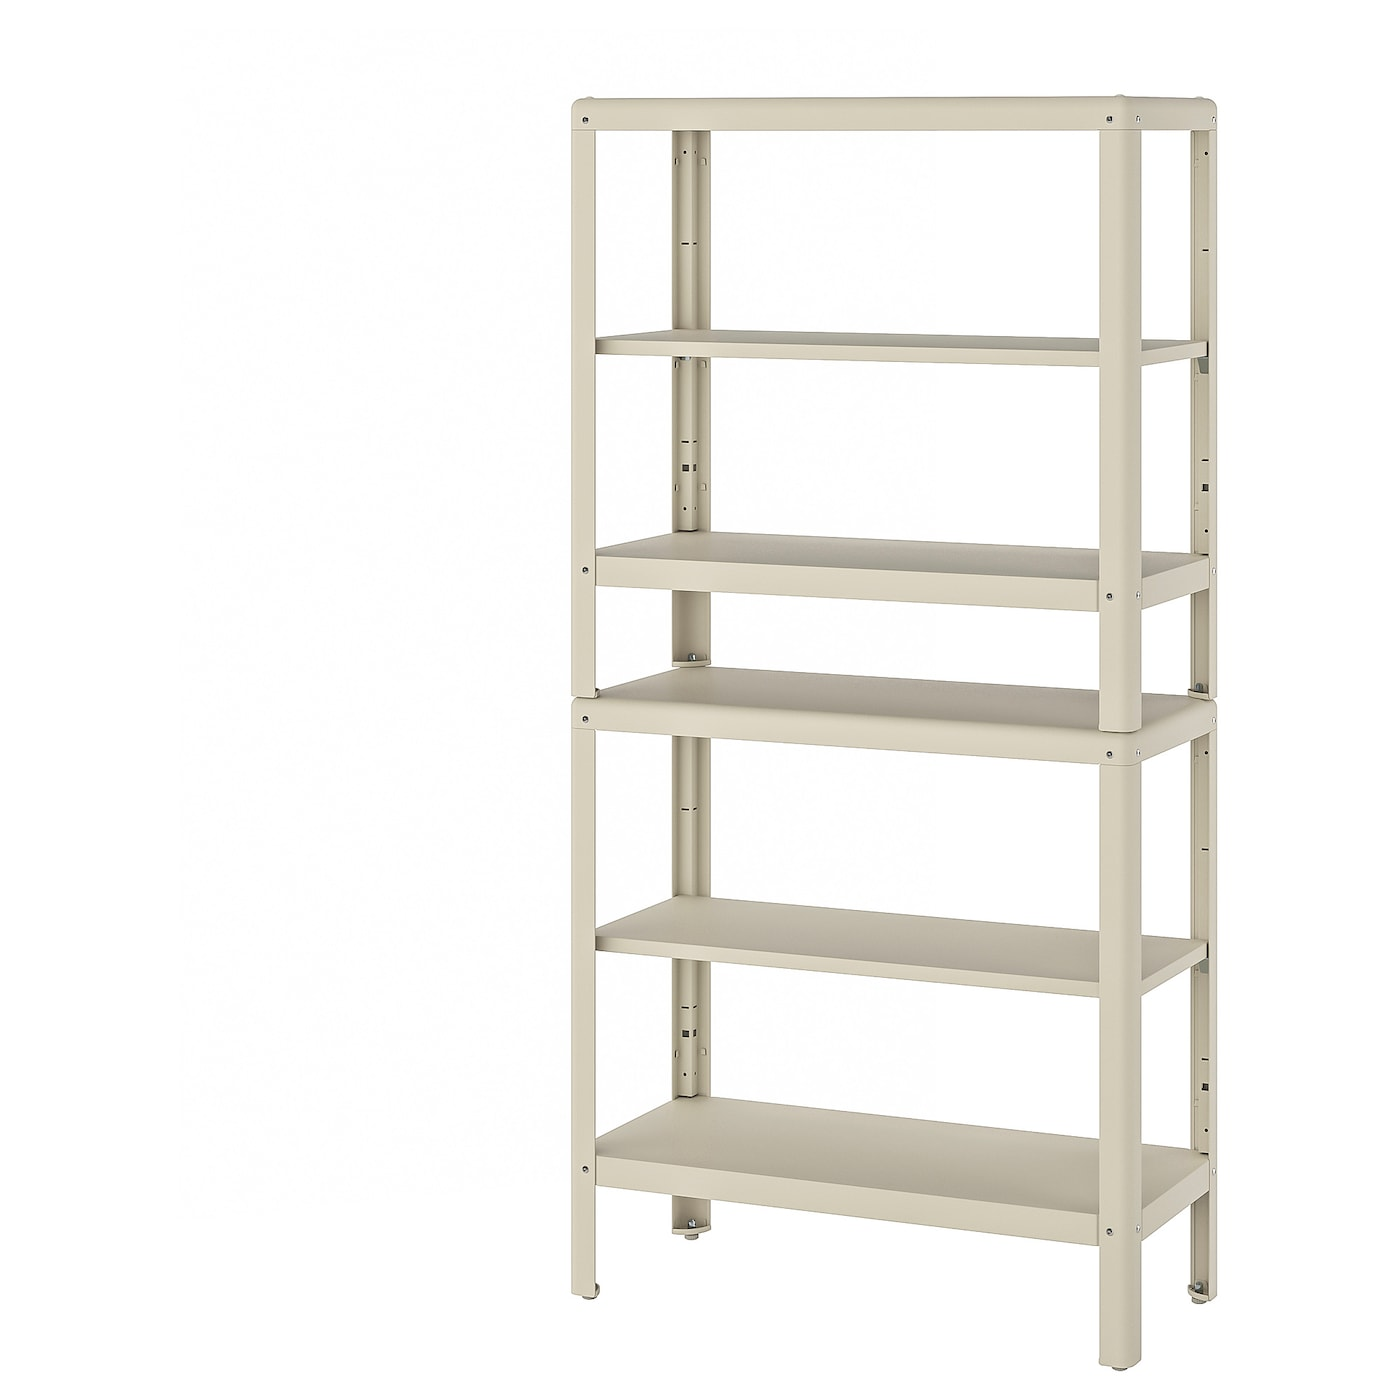 IKEA KOLBJÖRN shelving unit in/outdoor Suitable for both indoor and outdoor use.